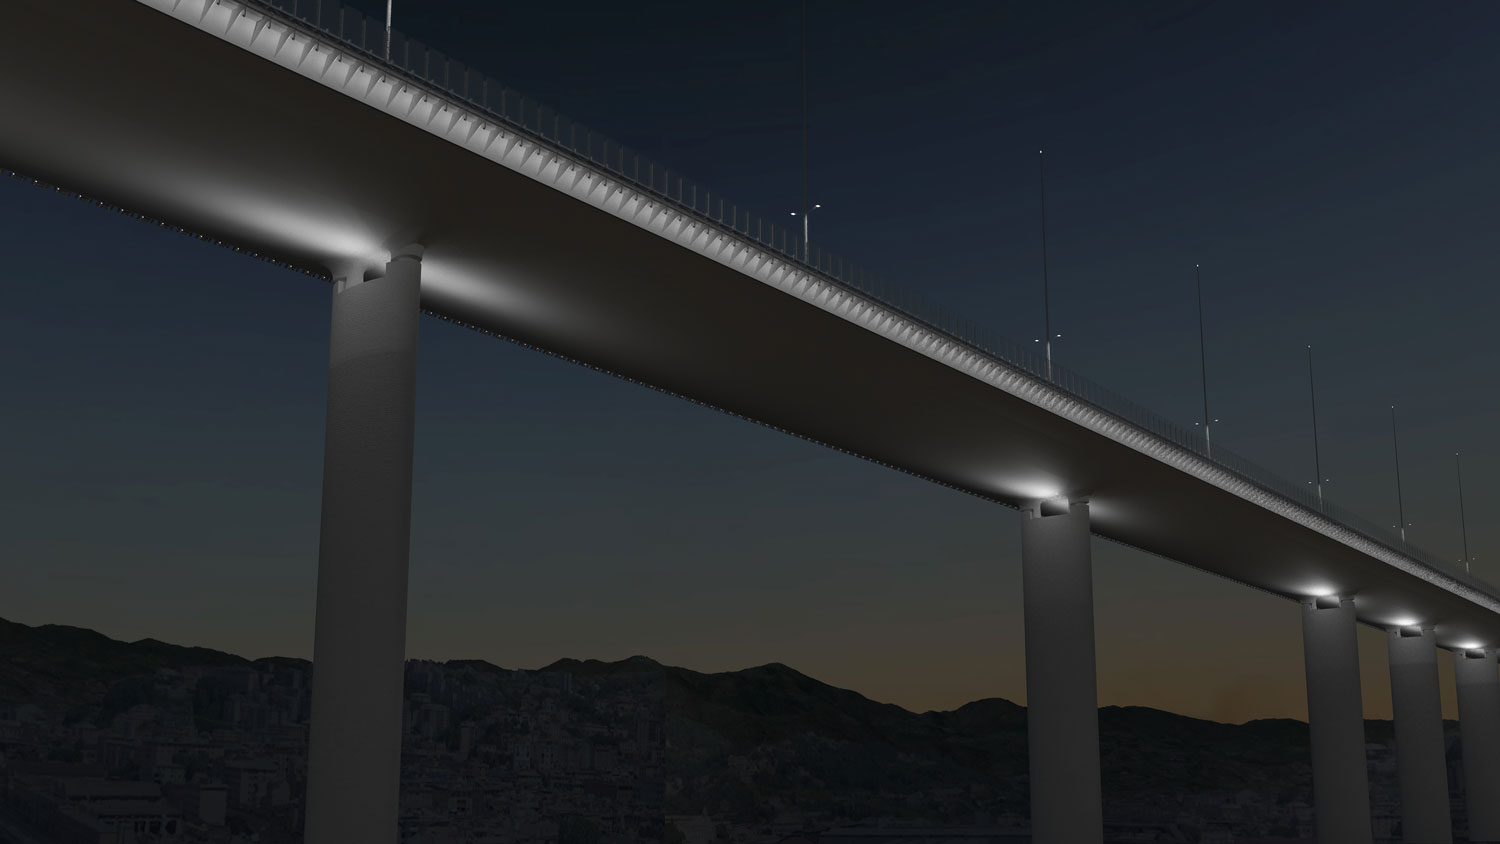 iGuzzini illuminates the Genoa Saint George Bridge, designed by Renzo Piano